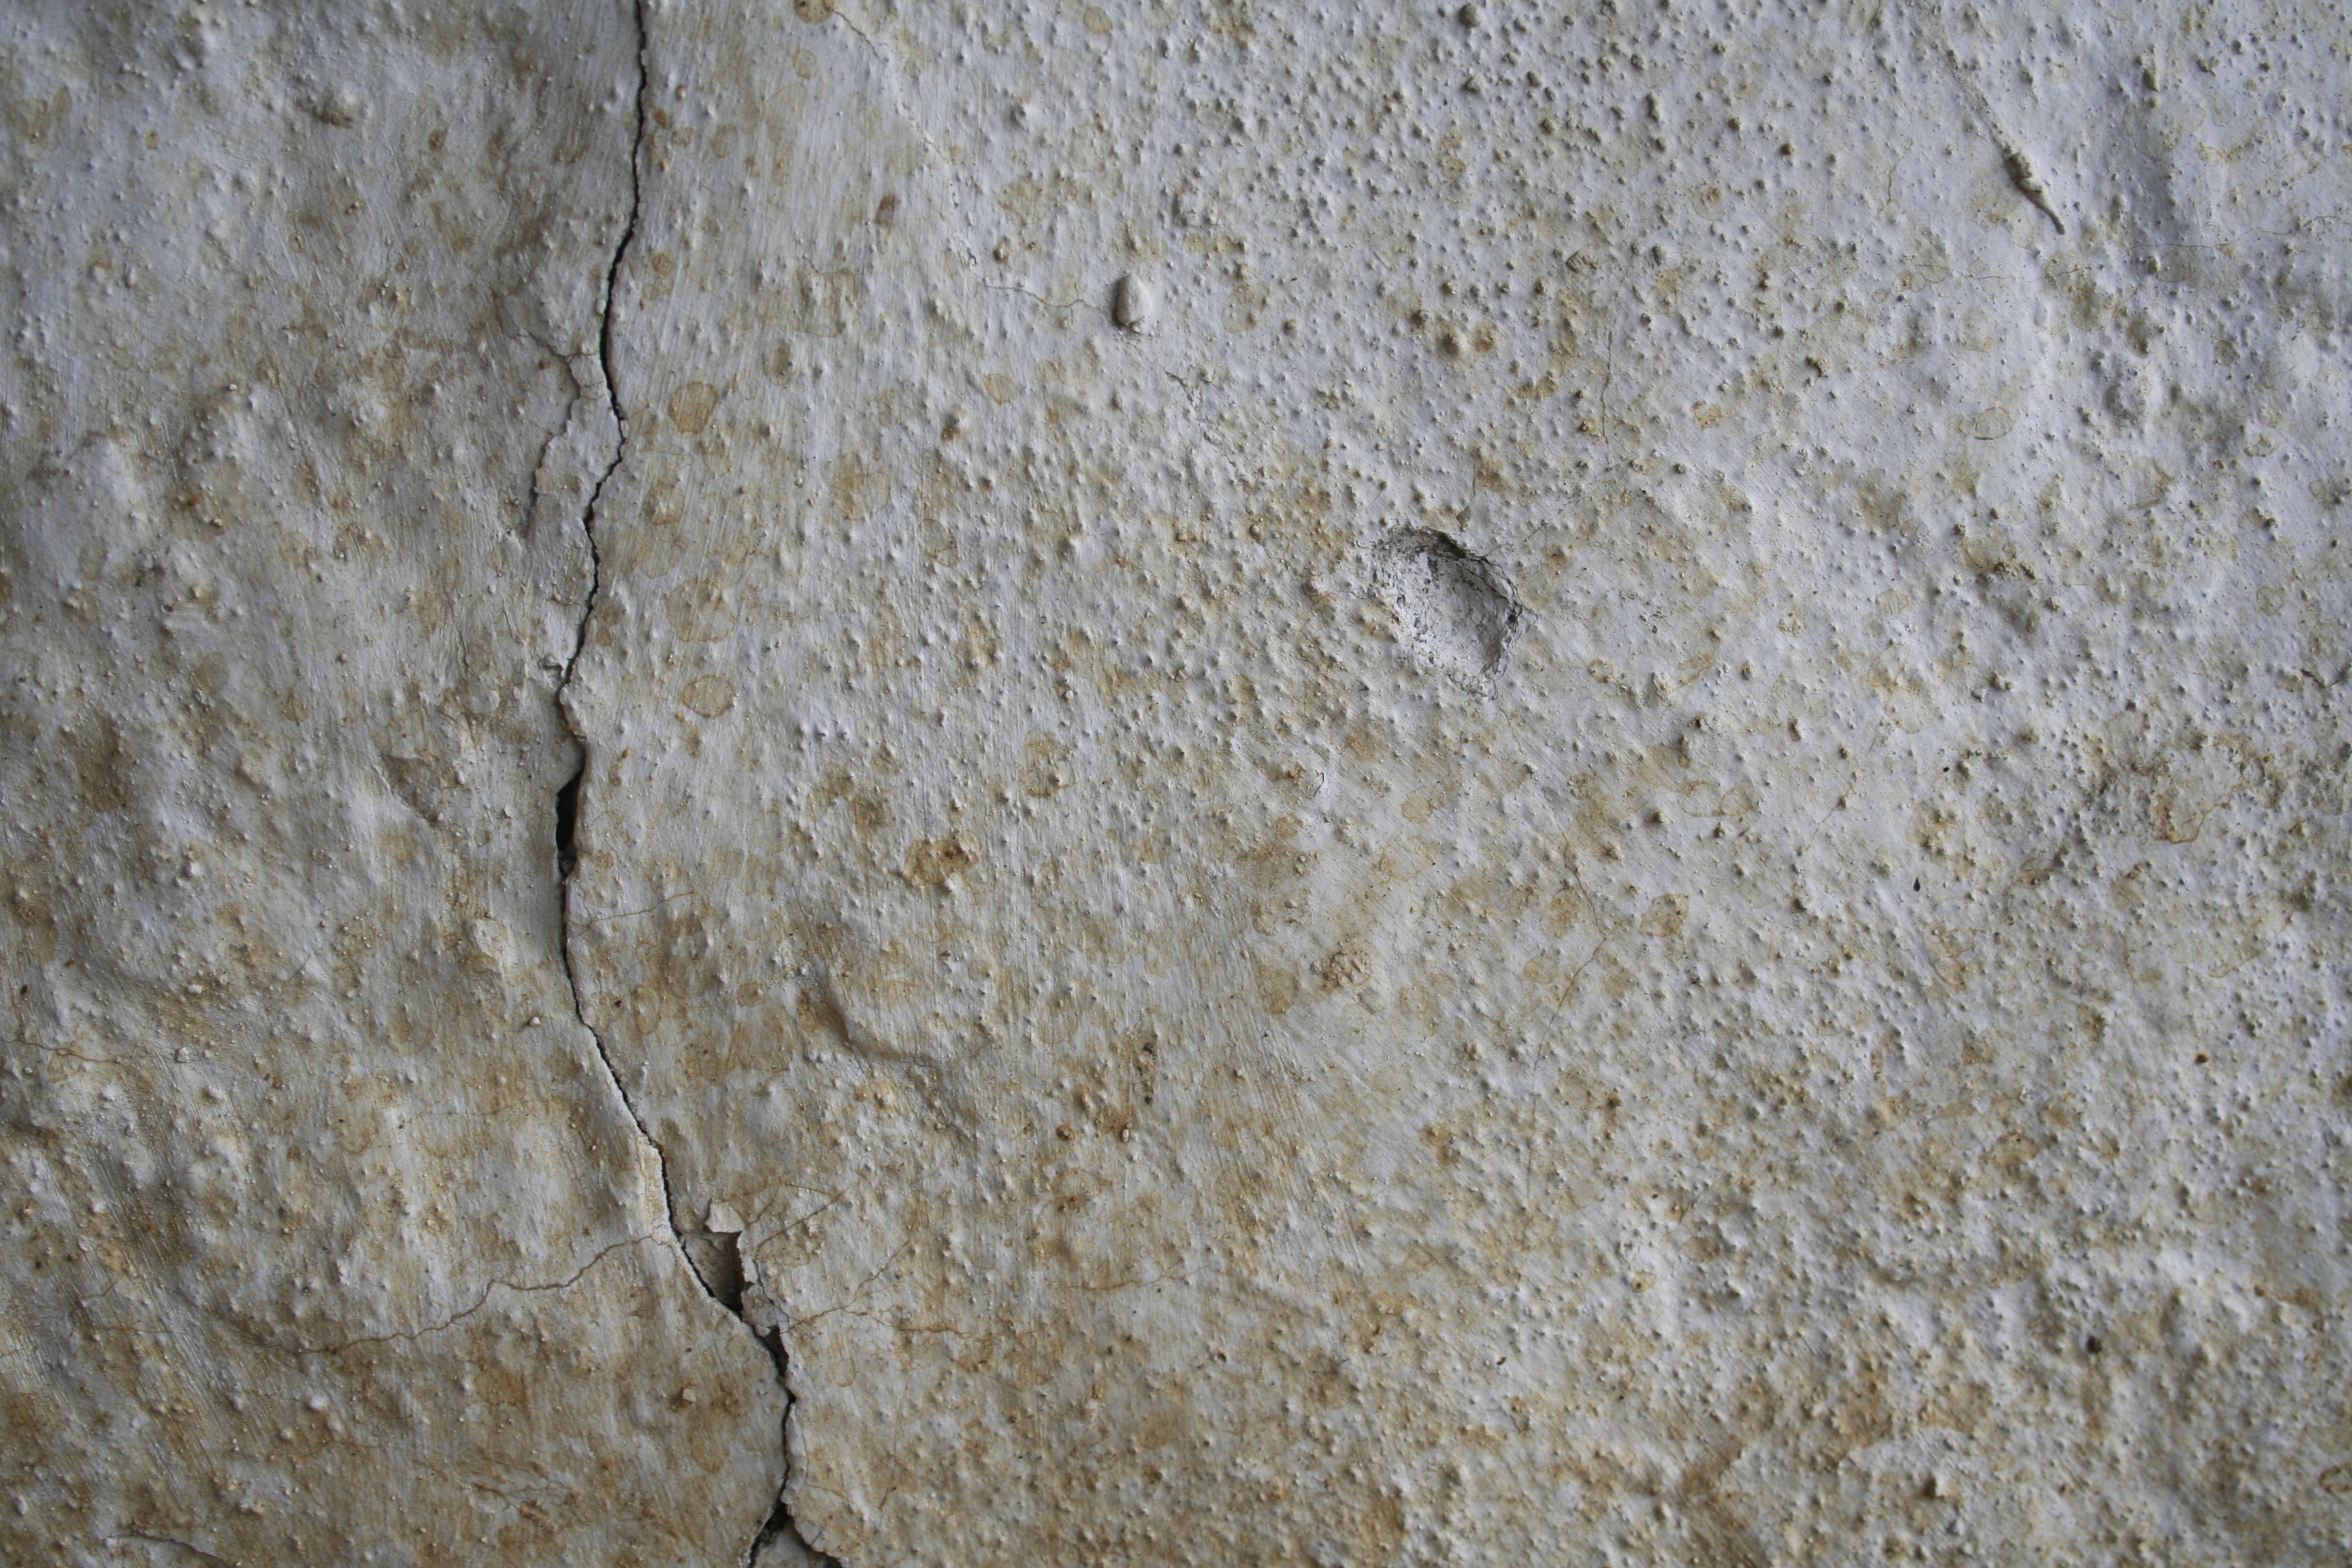 Best Texture For Walls White And Dusty Cracked Wall Best Texture For Photoshop